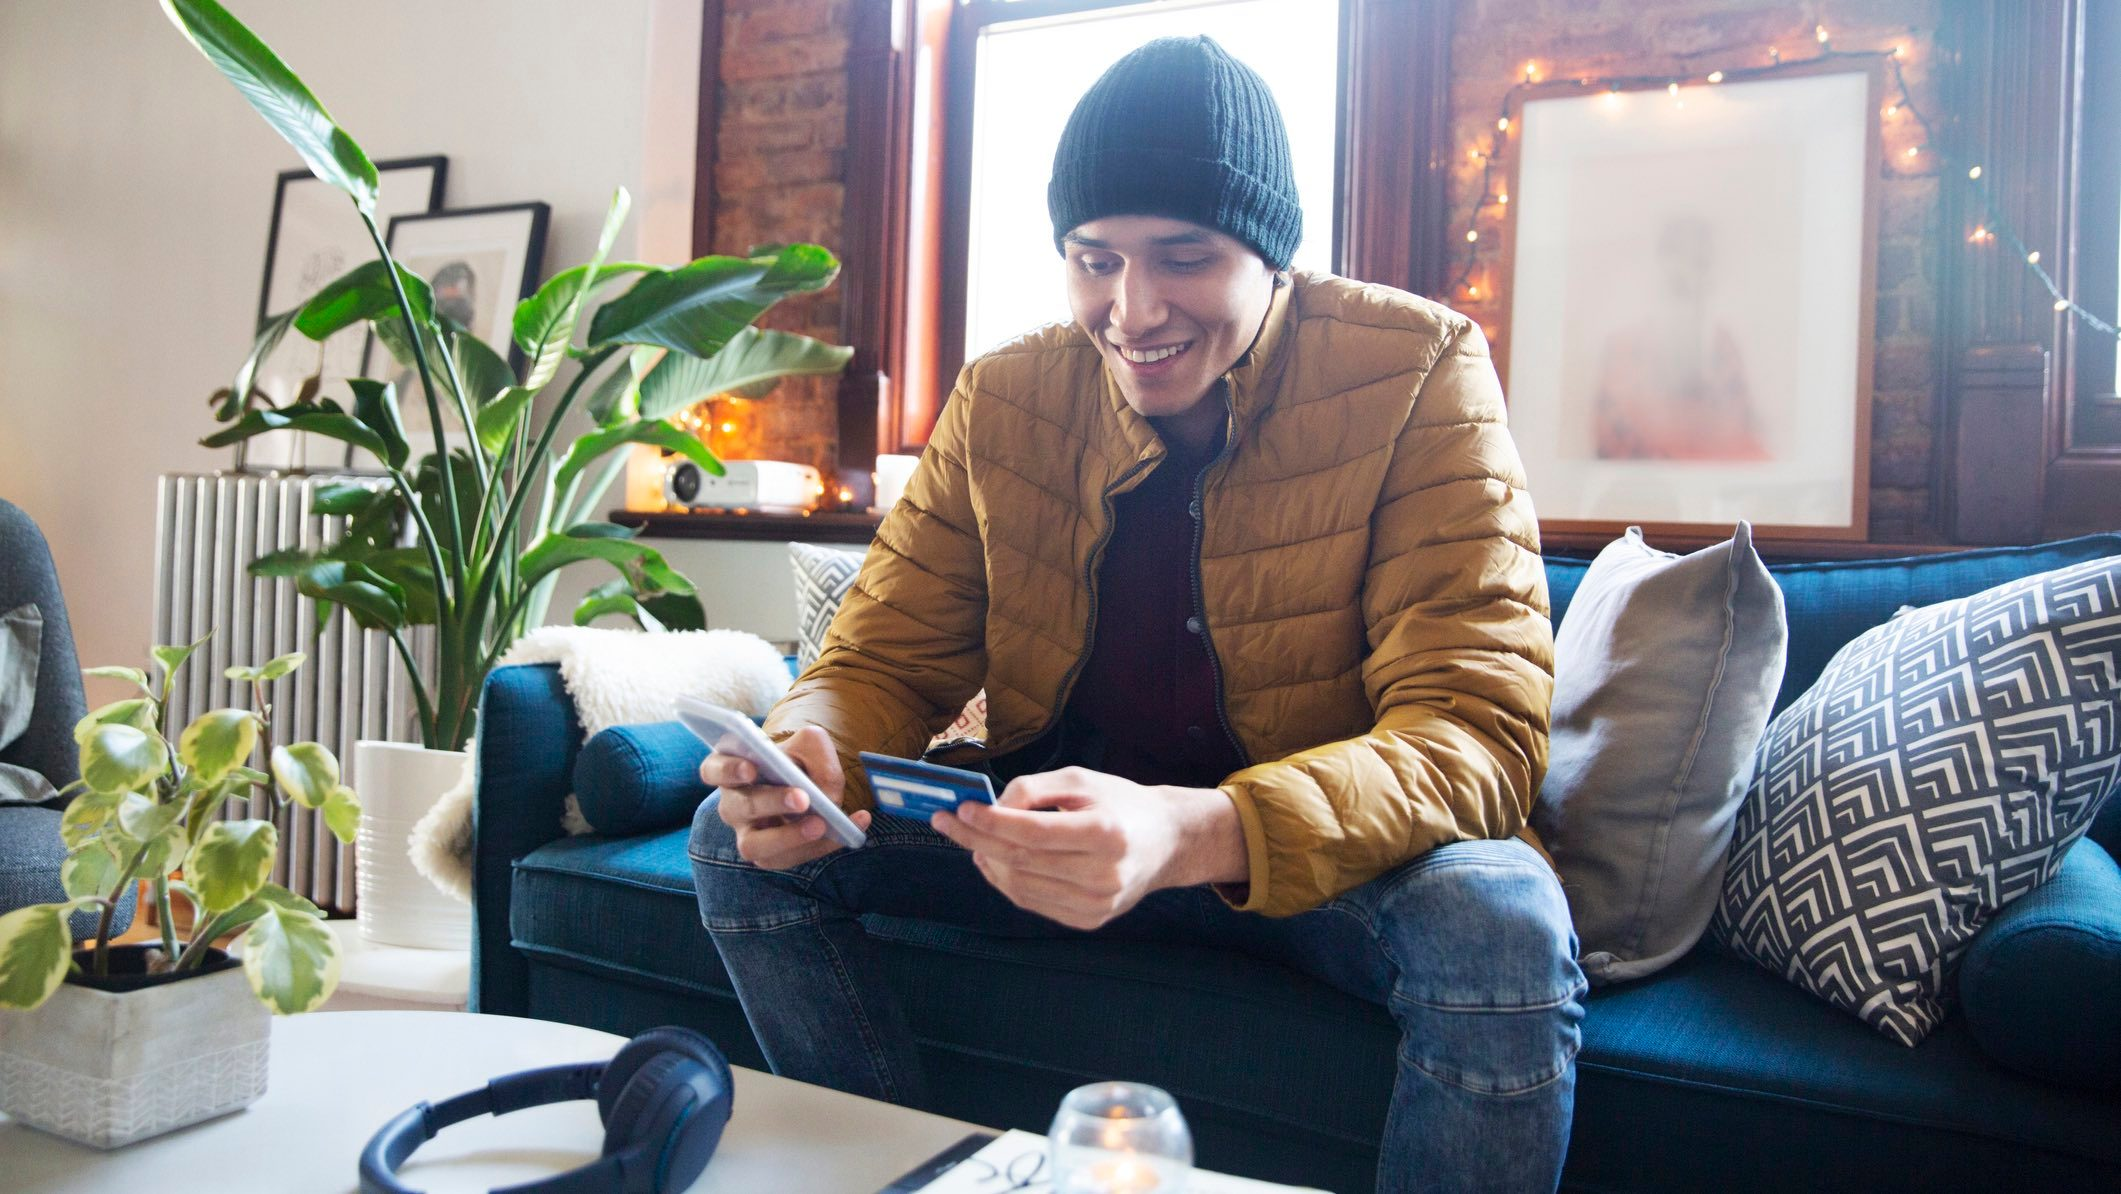 Man in a beanie and coat sitting on a lounge, using his phone and credit card to make EOFY purchases.